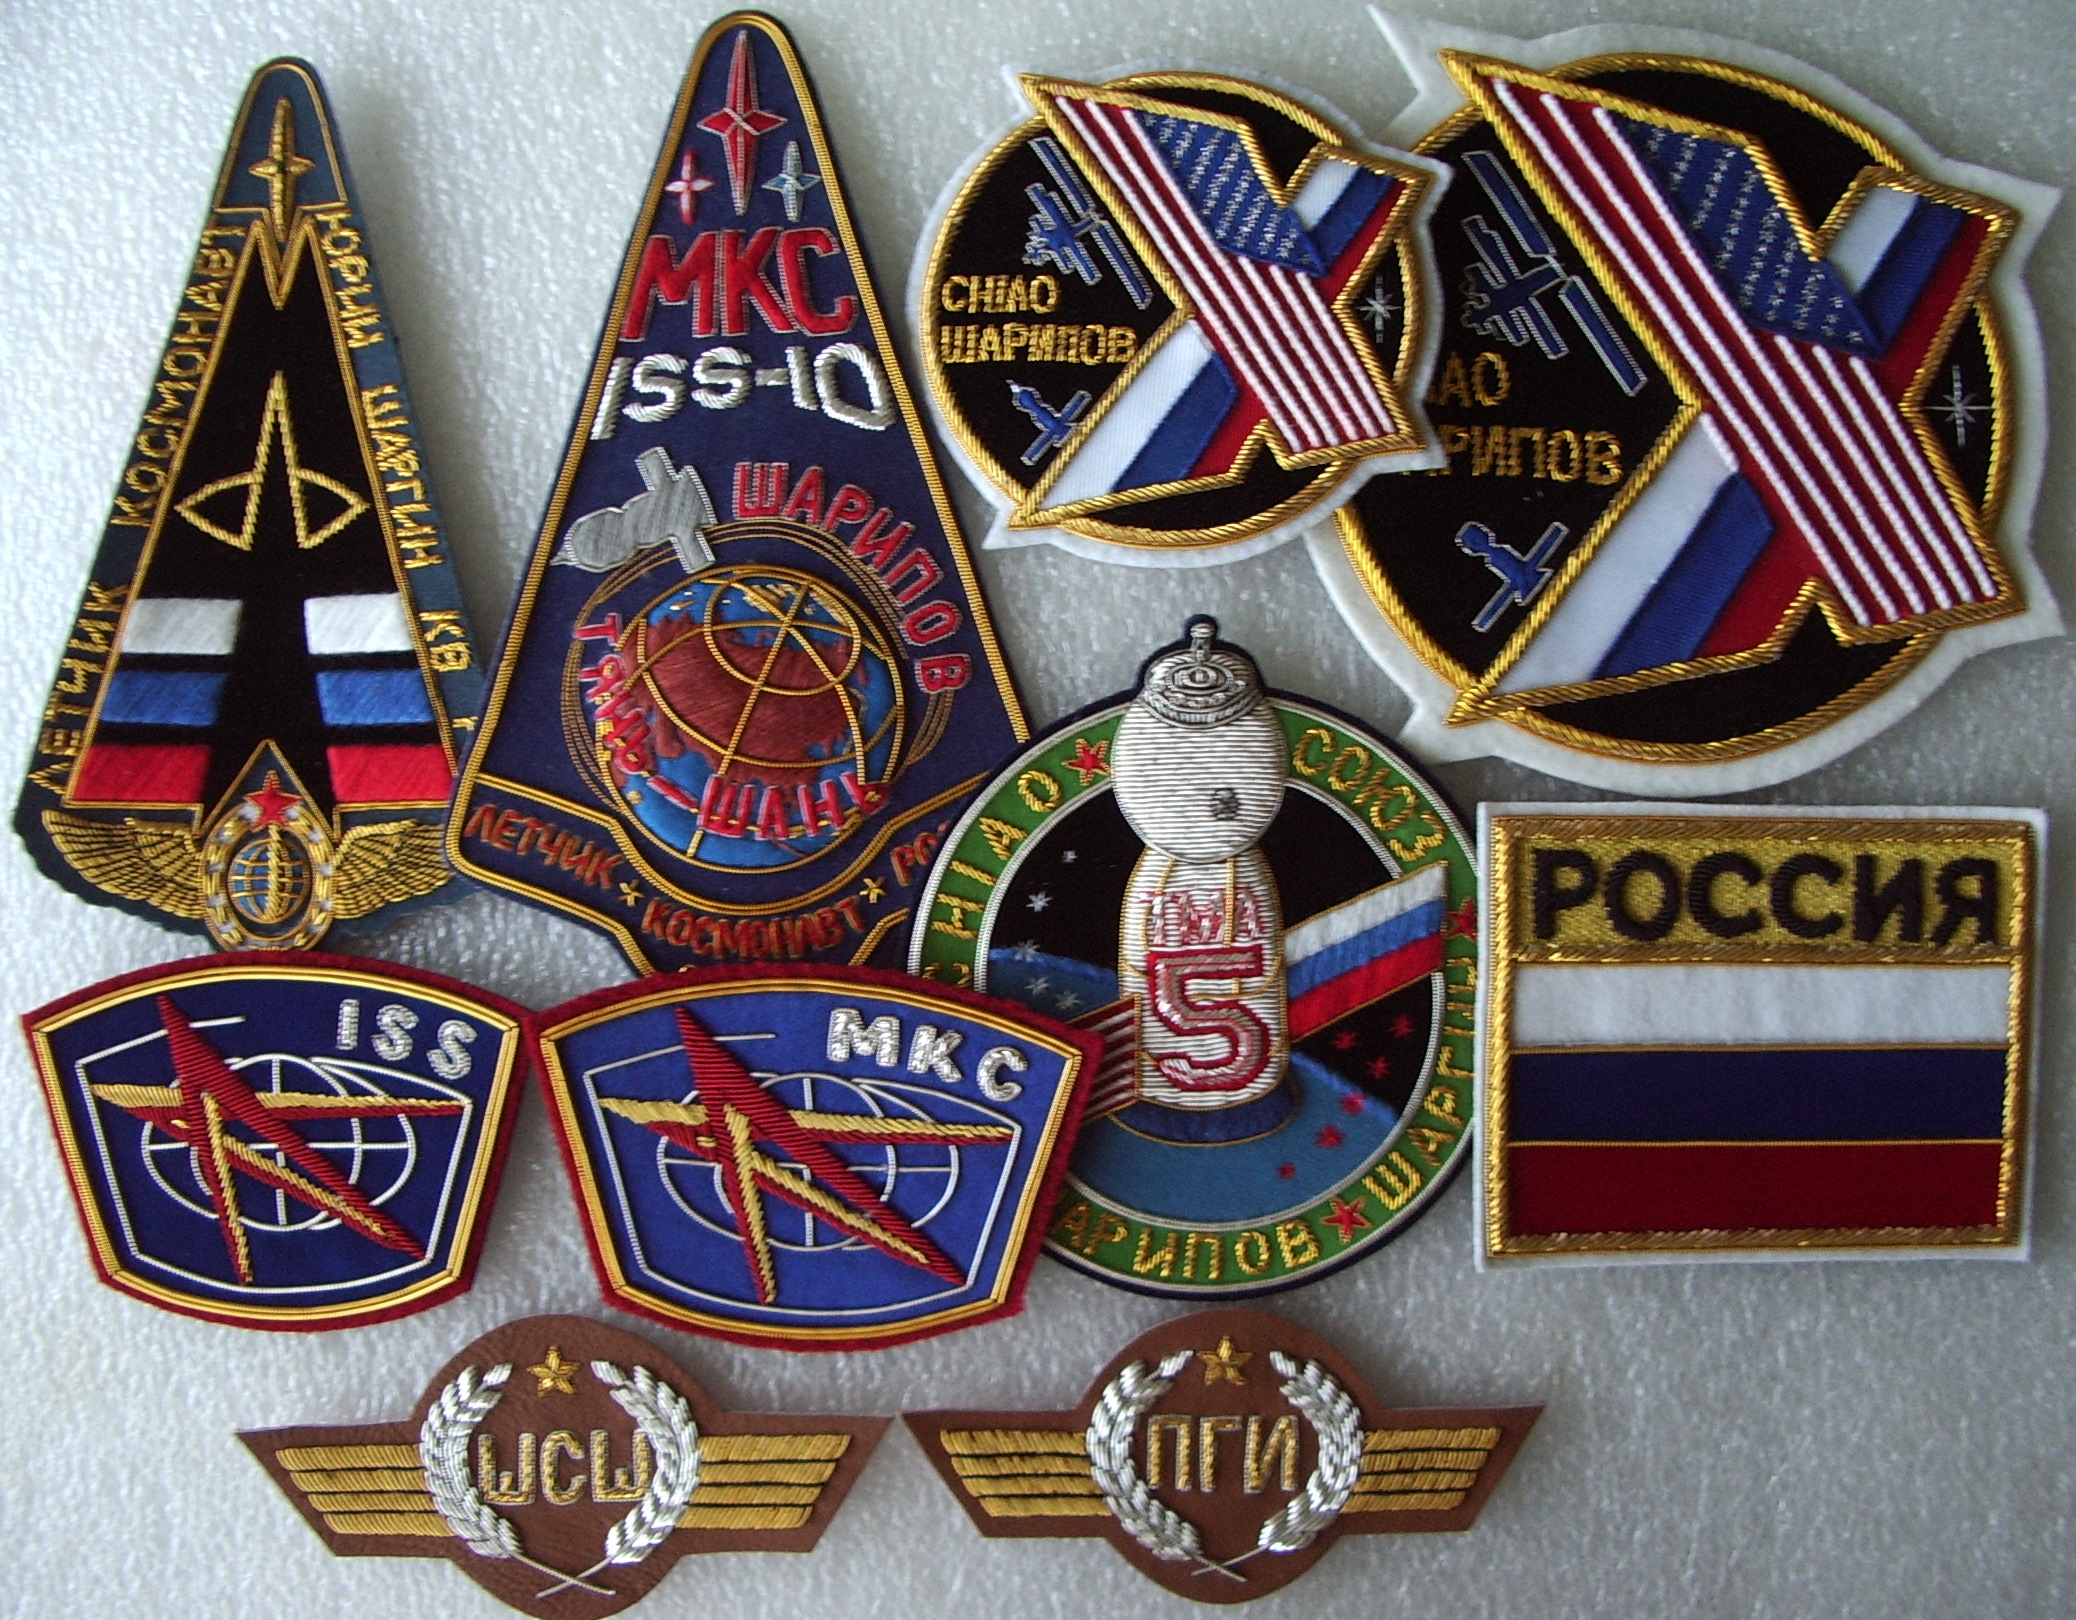 # spp099 Soyuz TMA-5/ISS-10 patches